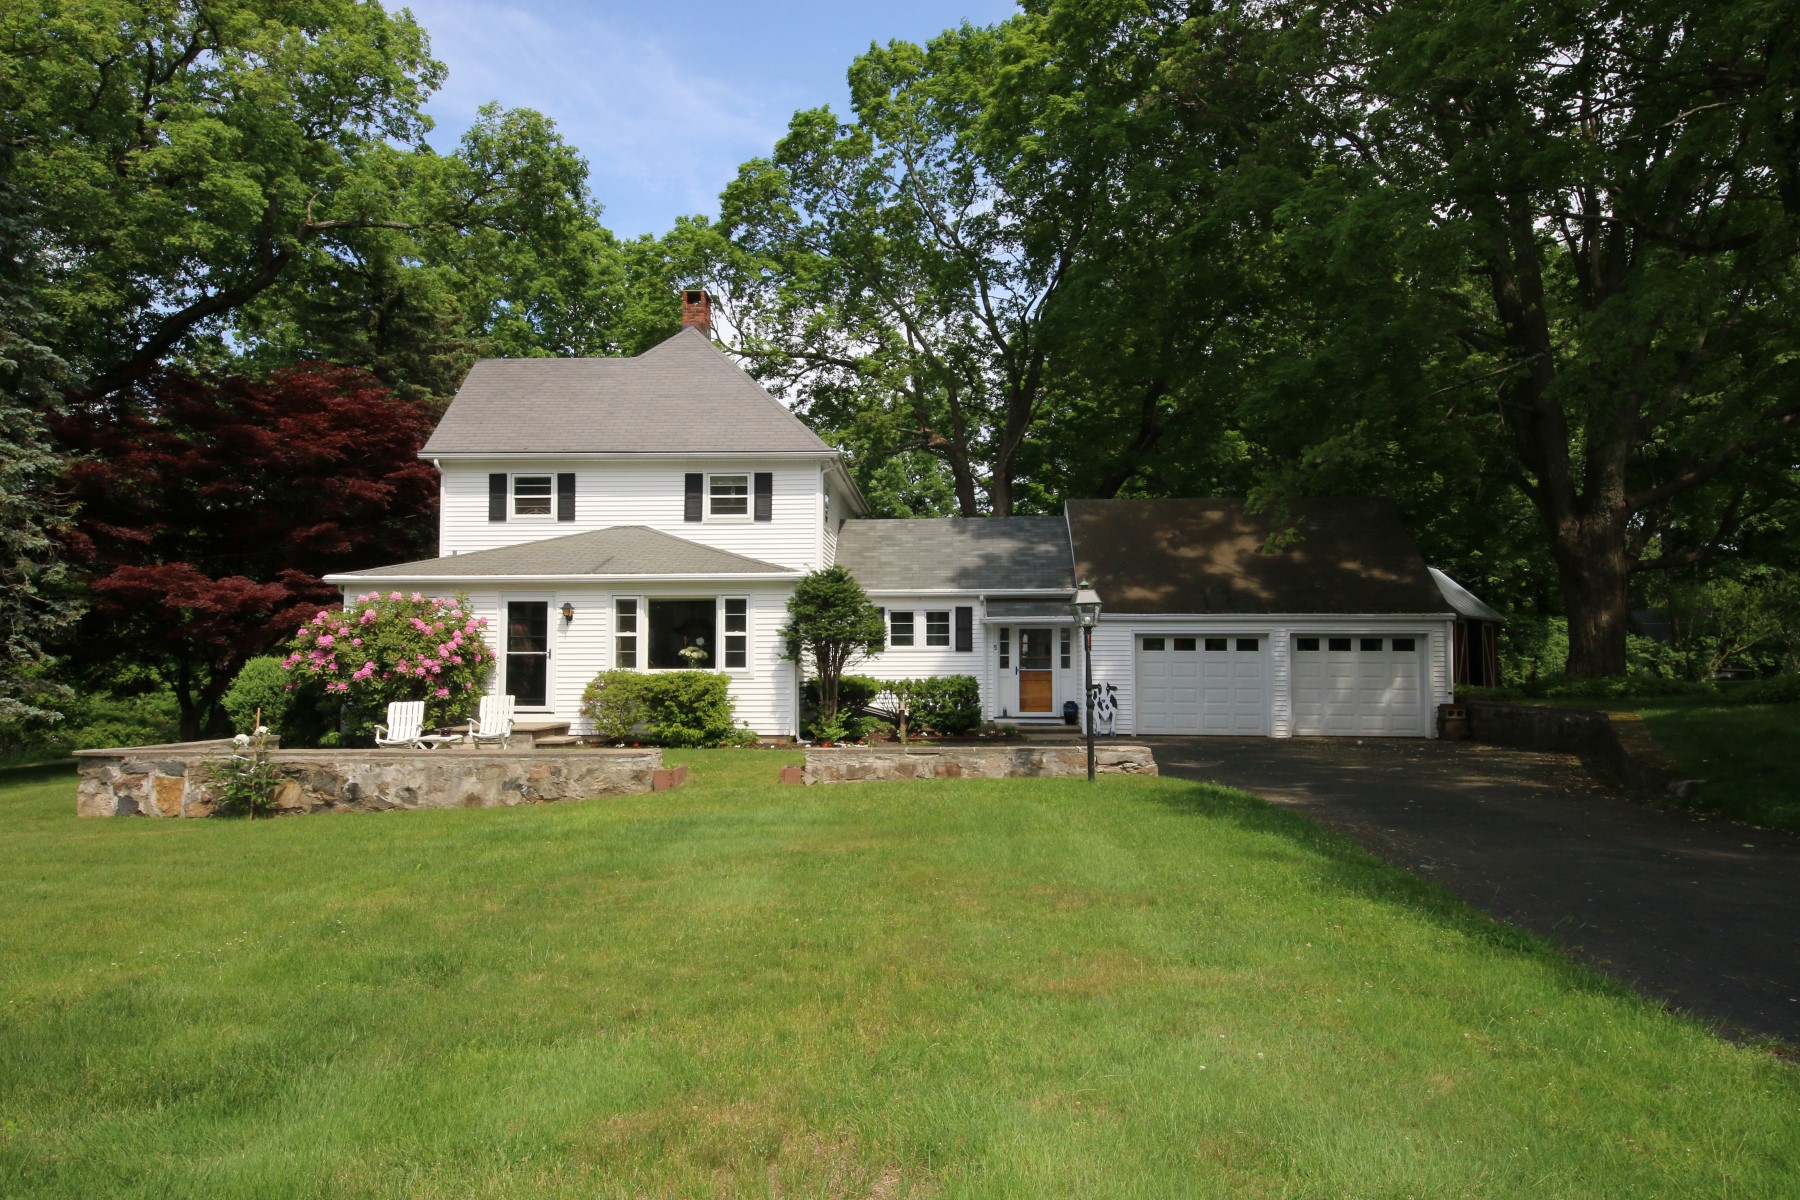 Single Family Home for Sale at Renovated Colonial on Park-like Setting 5 Marys Lane Ridgefield, Connecticut, 06877 United States